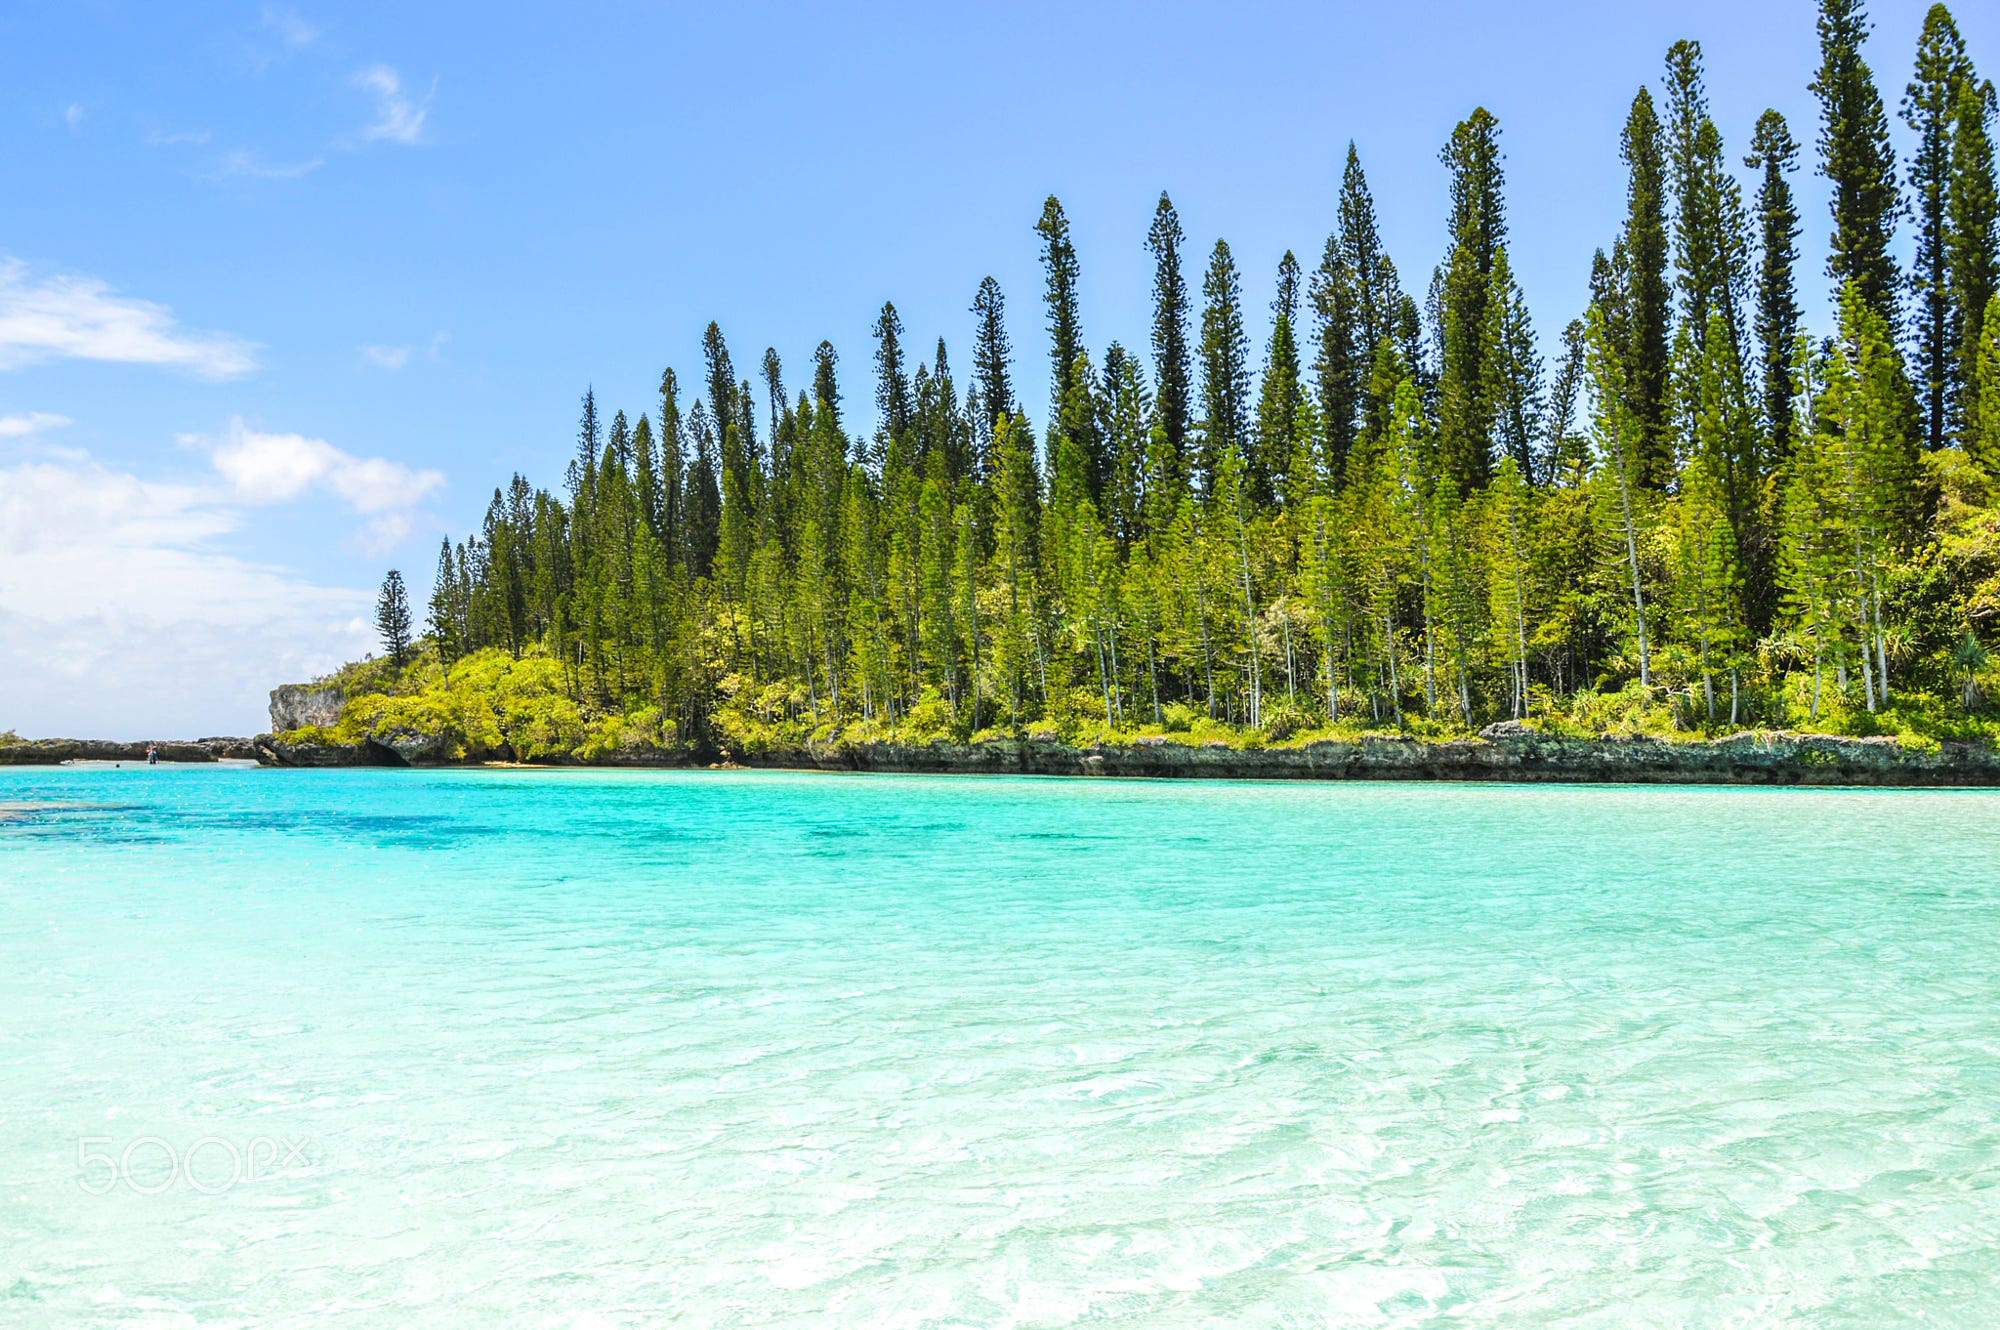 Glittering blue water lapping a pine forested hillock in New Caledonia